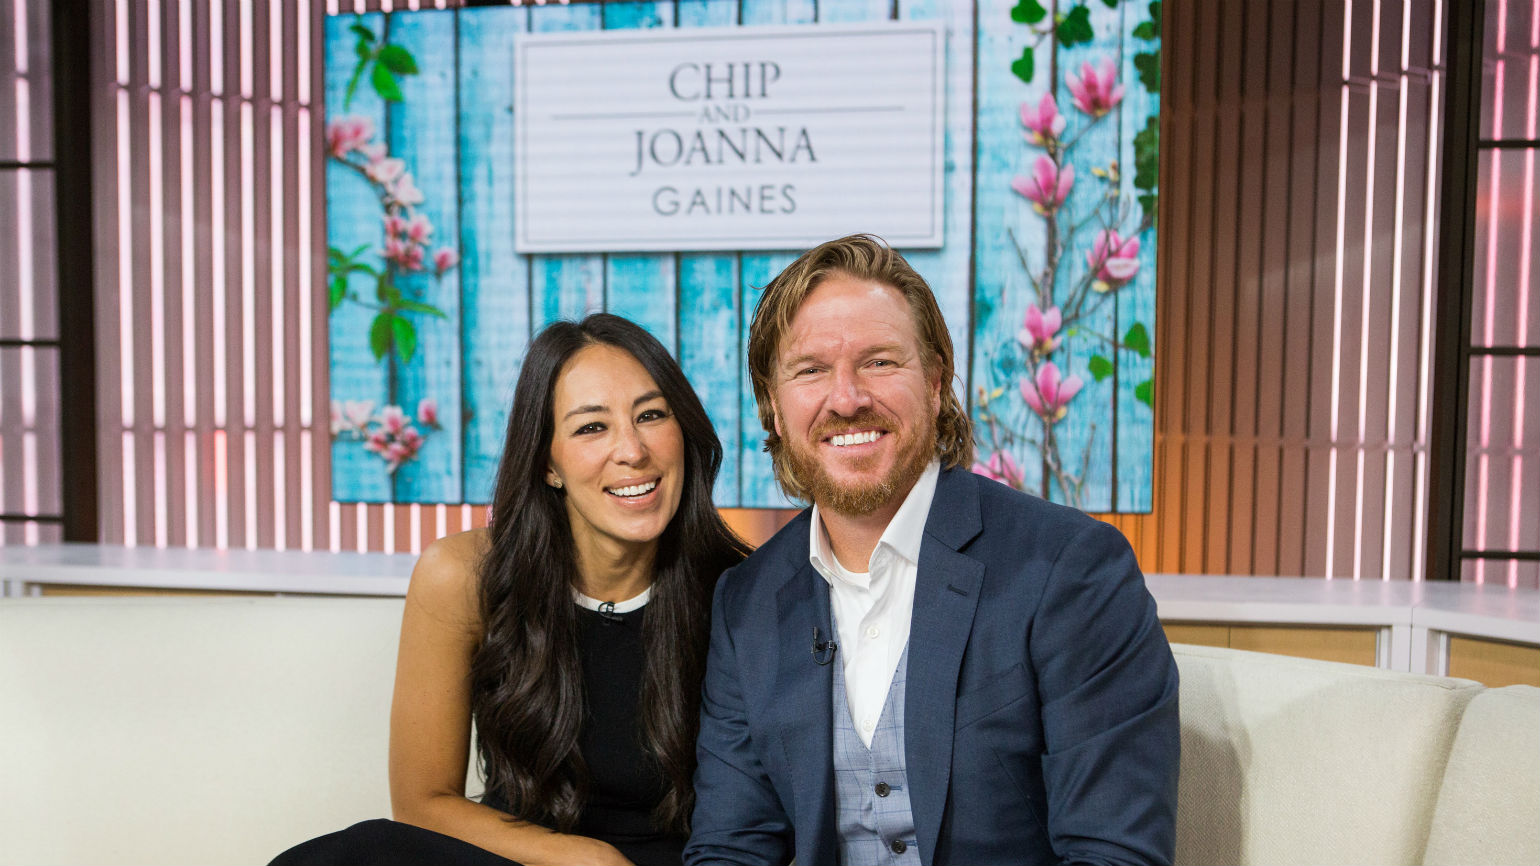 Chip Gaines Reveals Why 'Fixer Upper' Had to End